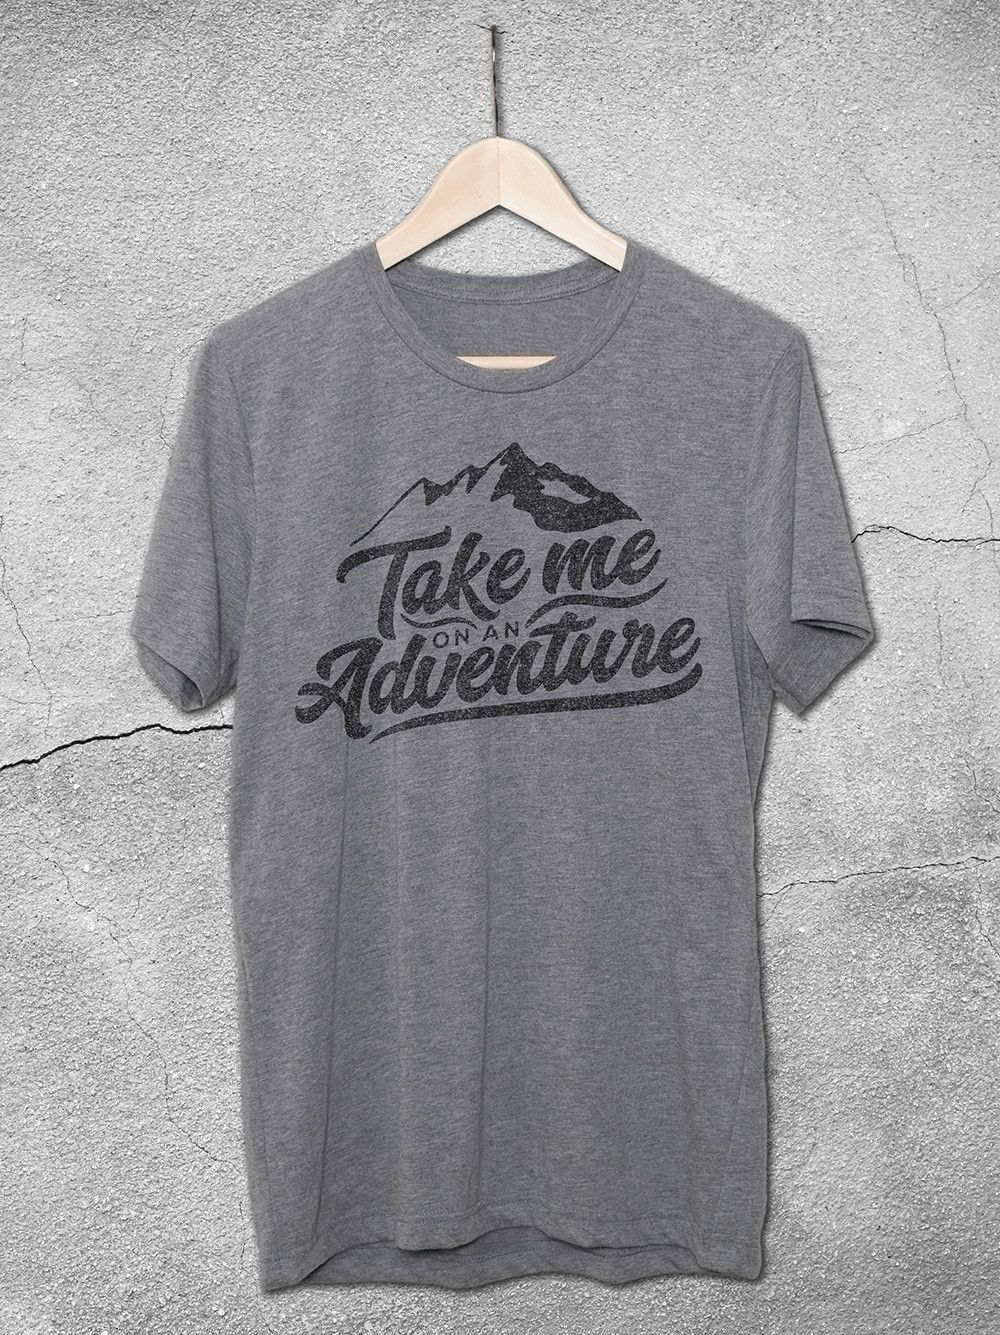 b8324bba48f Take Me On An Adventure T-Shirt